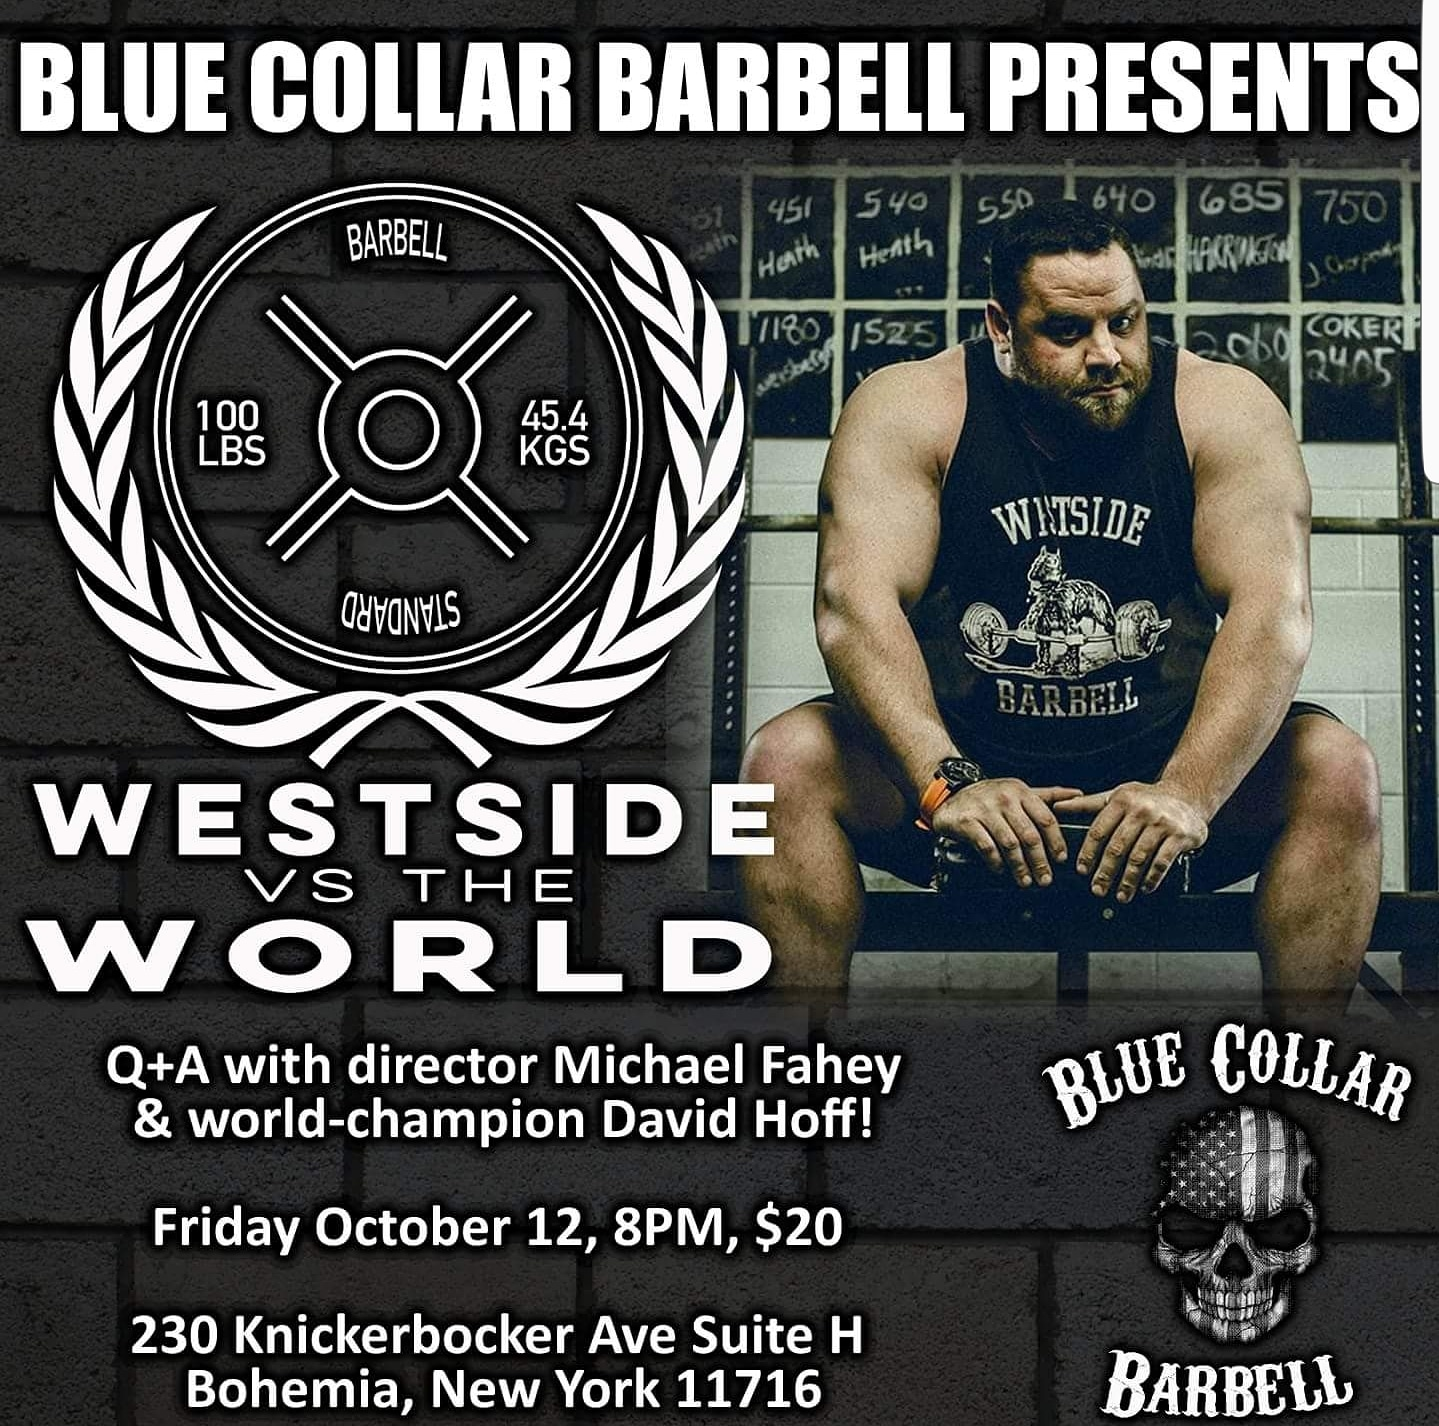 westside barbell Q&A at Blue Collar Barbell